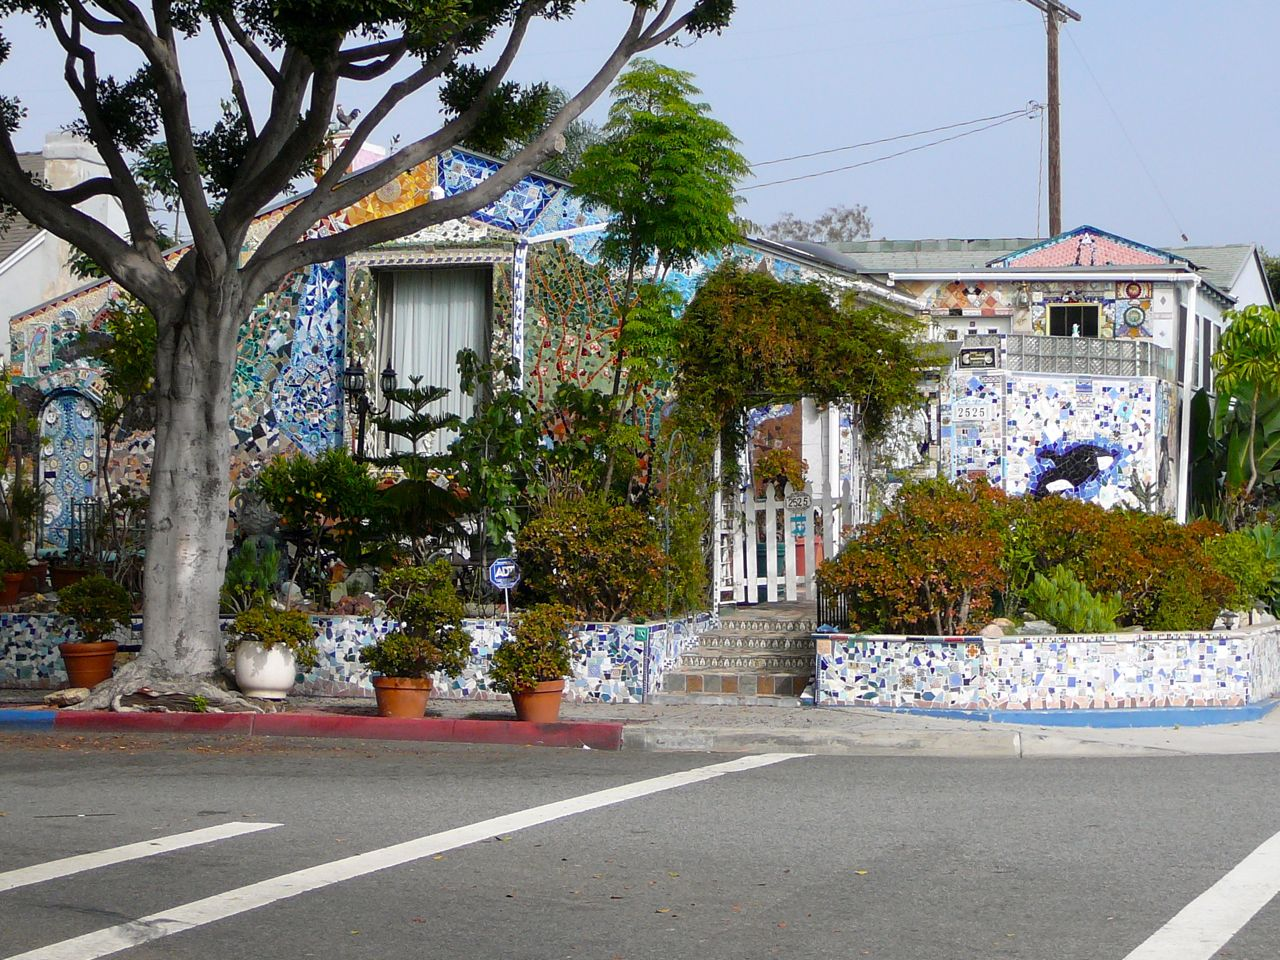 1000 images about mosaic projects on pinterest for House sitting santa monica